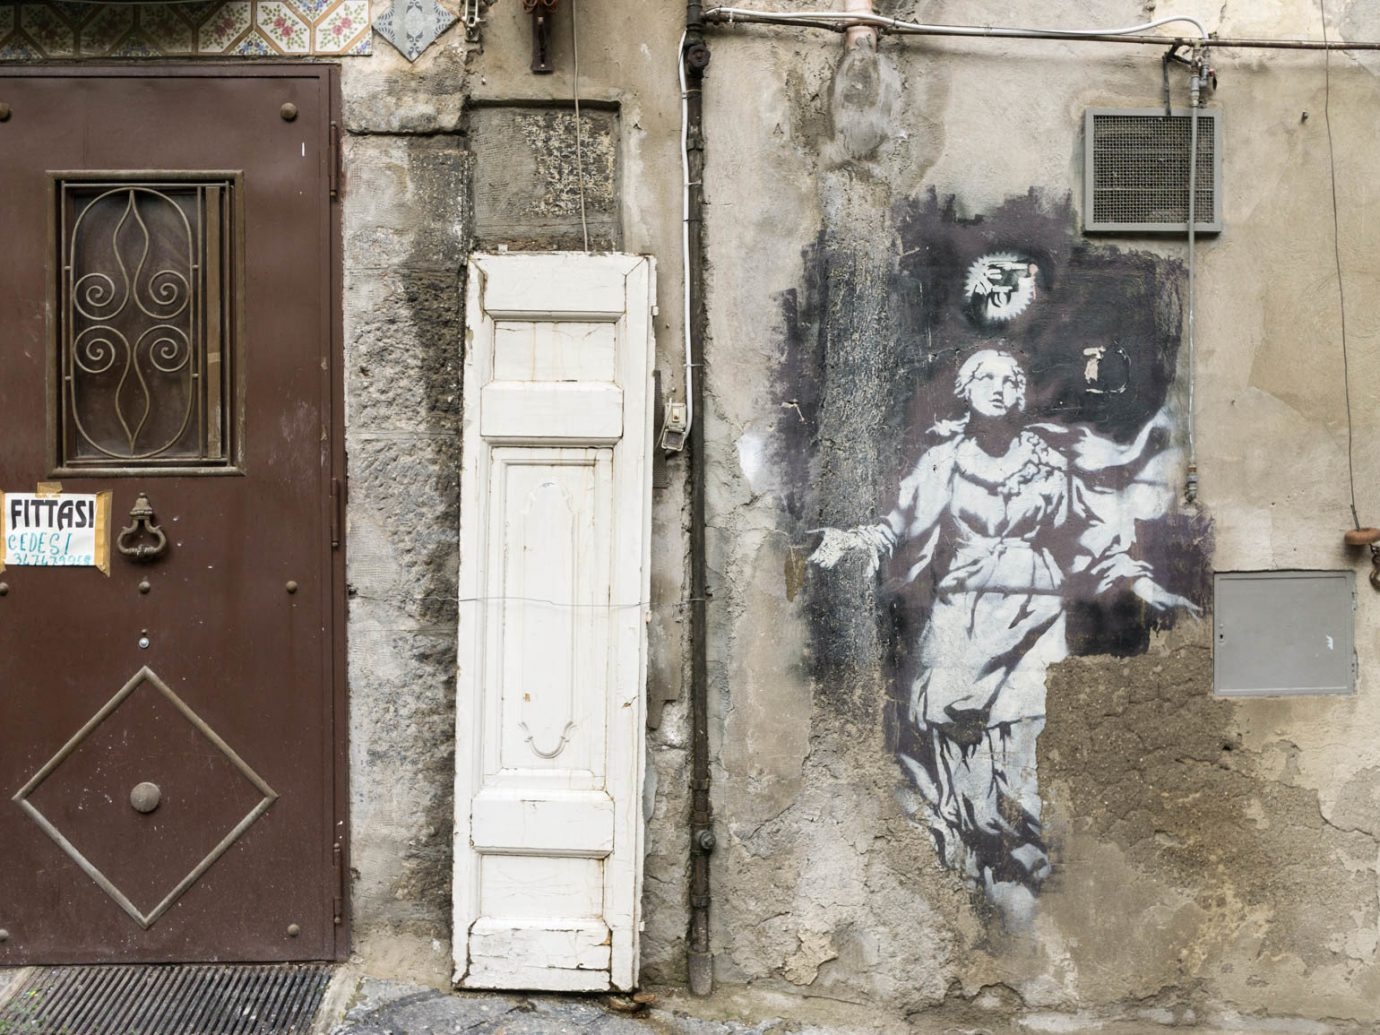 Trip Ideas building outdoor street art wall door art old facade window street road